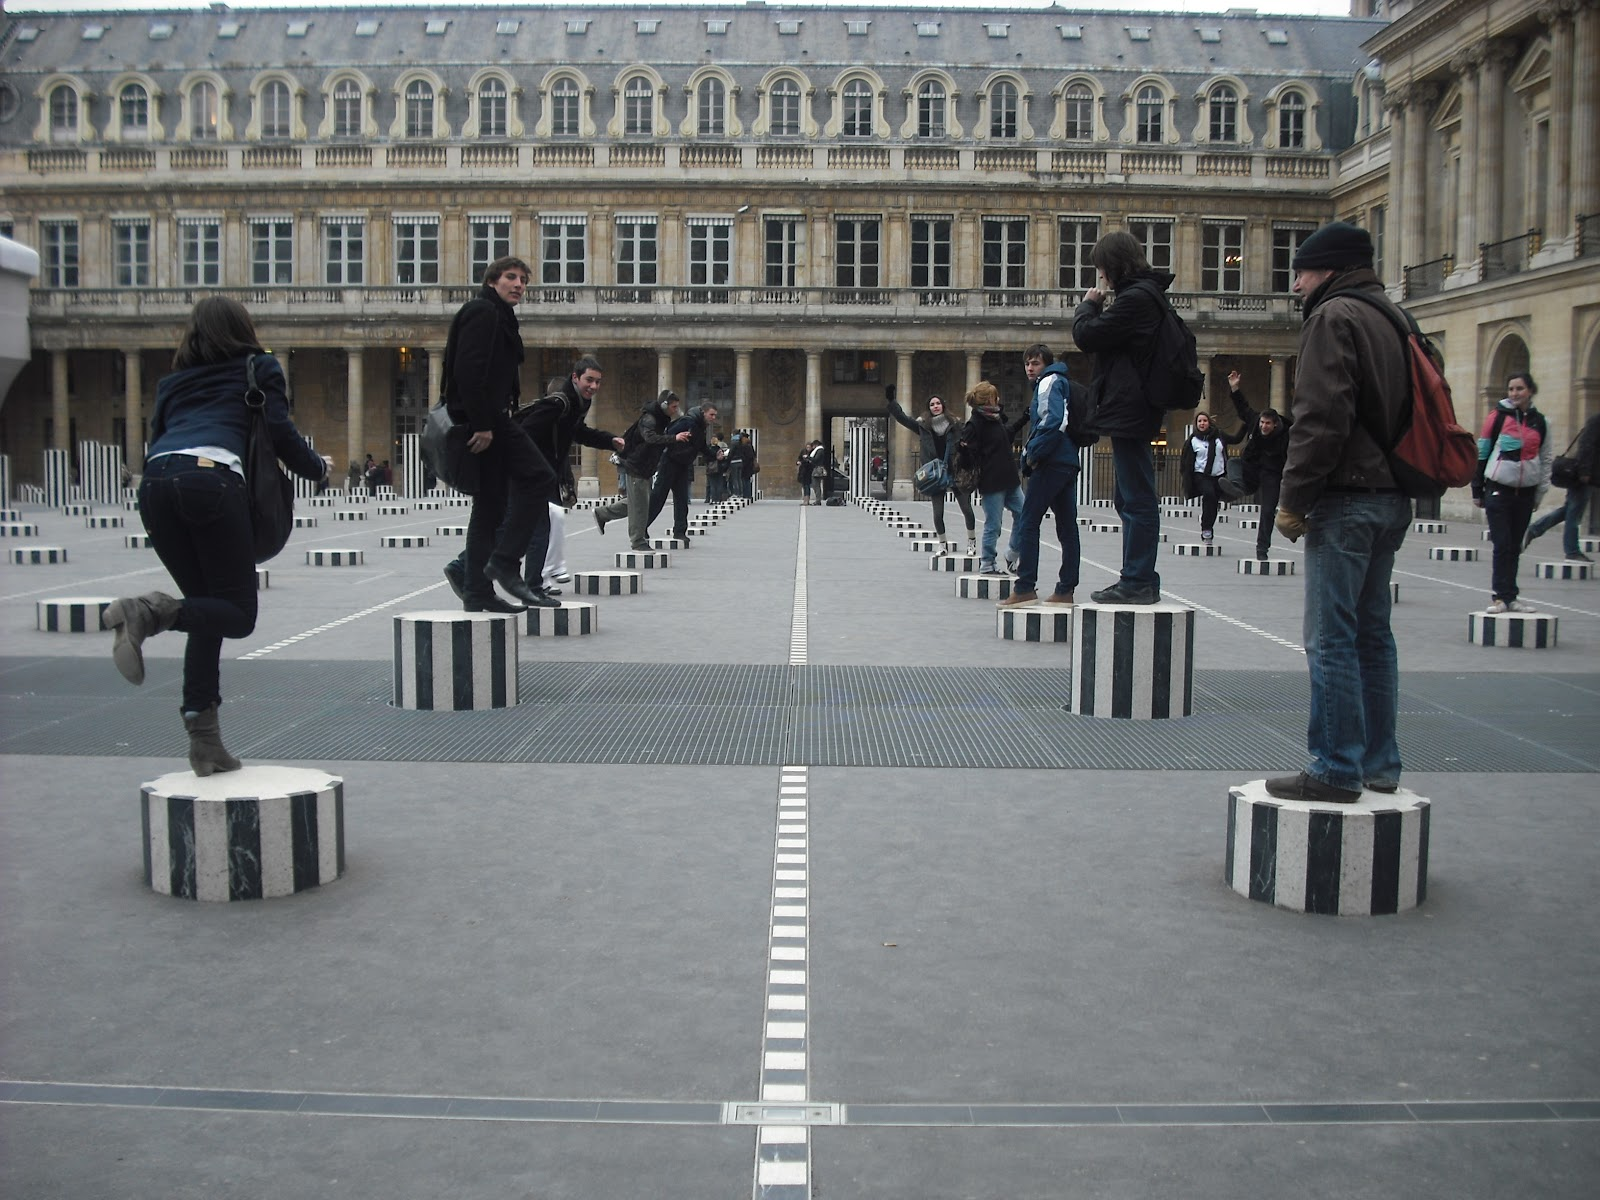 Place du Palais-Royal - Walking Tour Around Paris